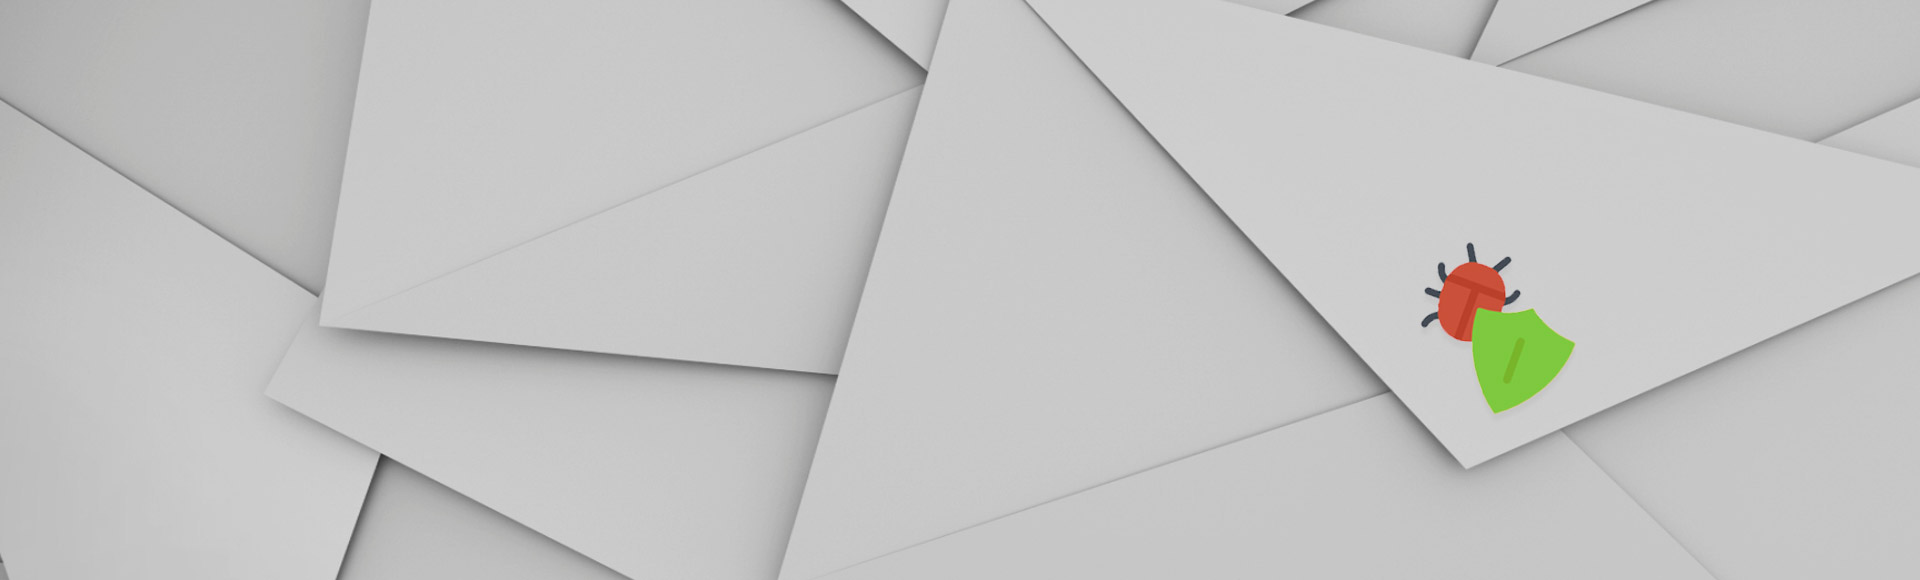 Sibername antispam and email archiver tools